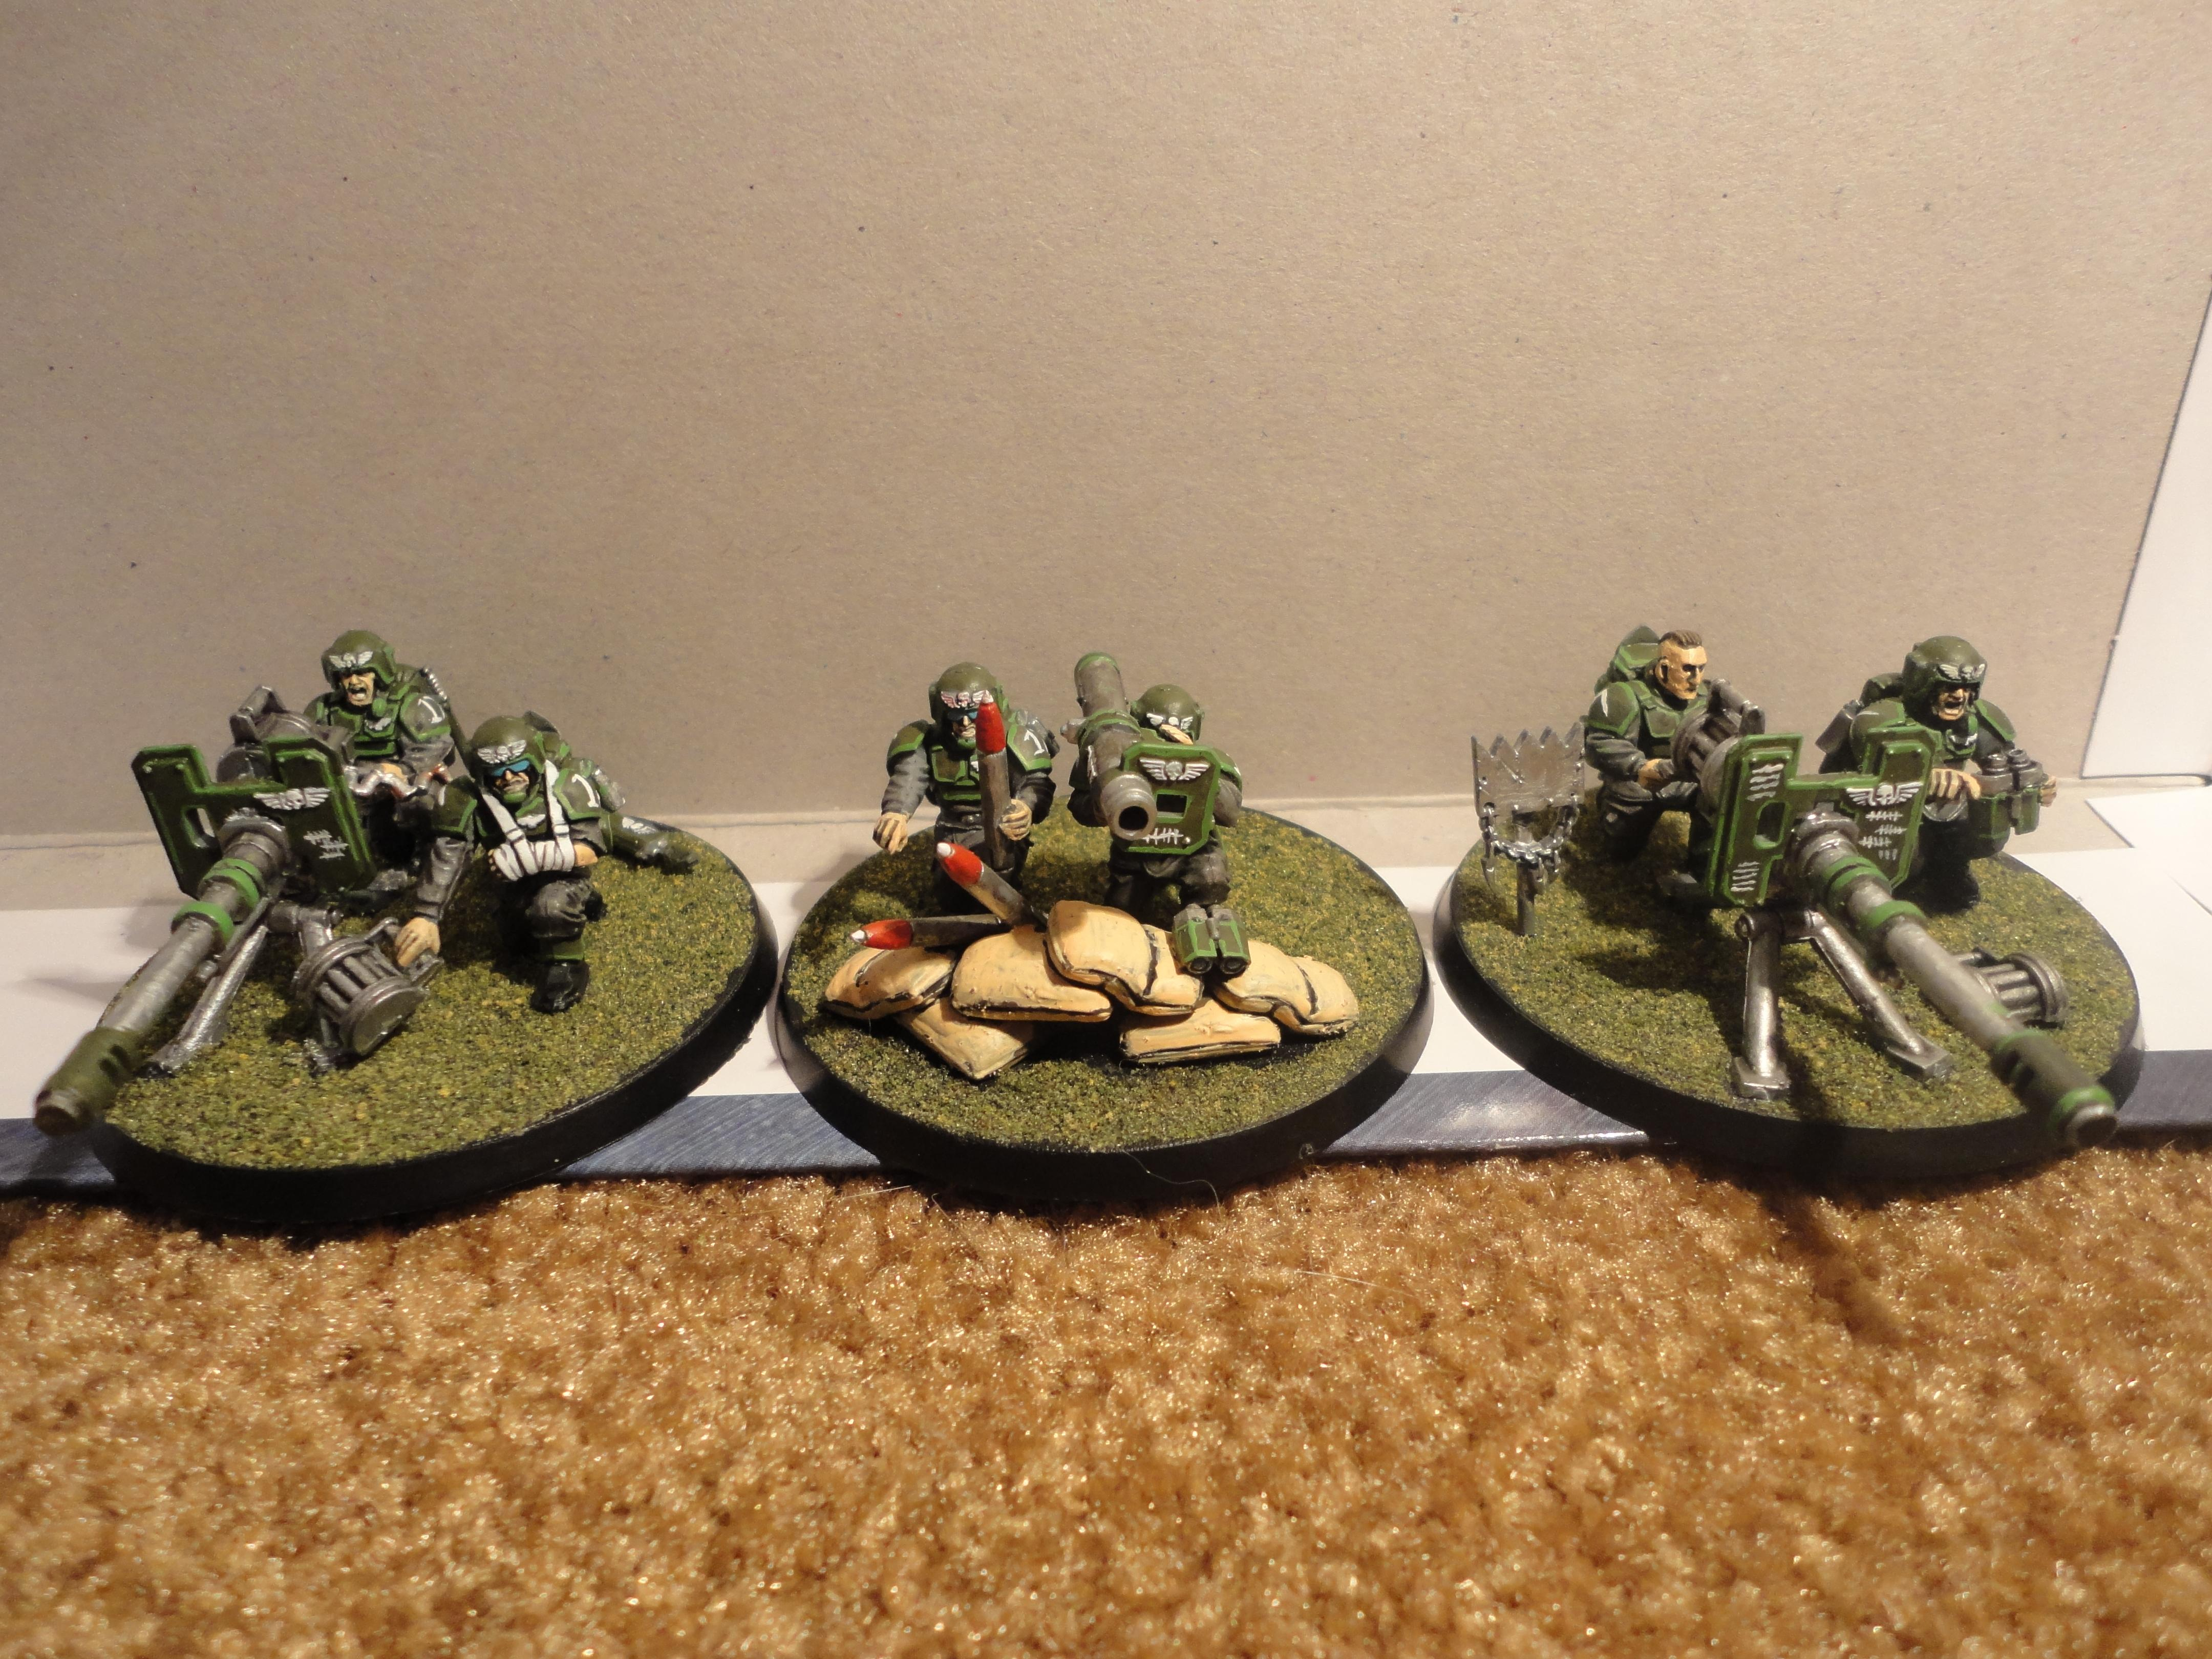 Autocannon, Grass Base, Heavy Weapons Team, Imperial Guard, Lascannon And Rocket Launcher, Warhammer 40,000